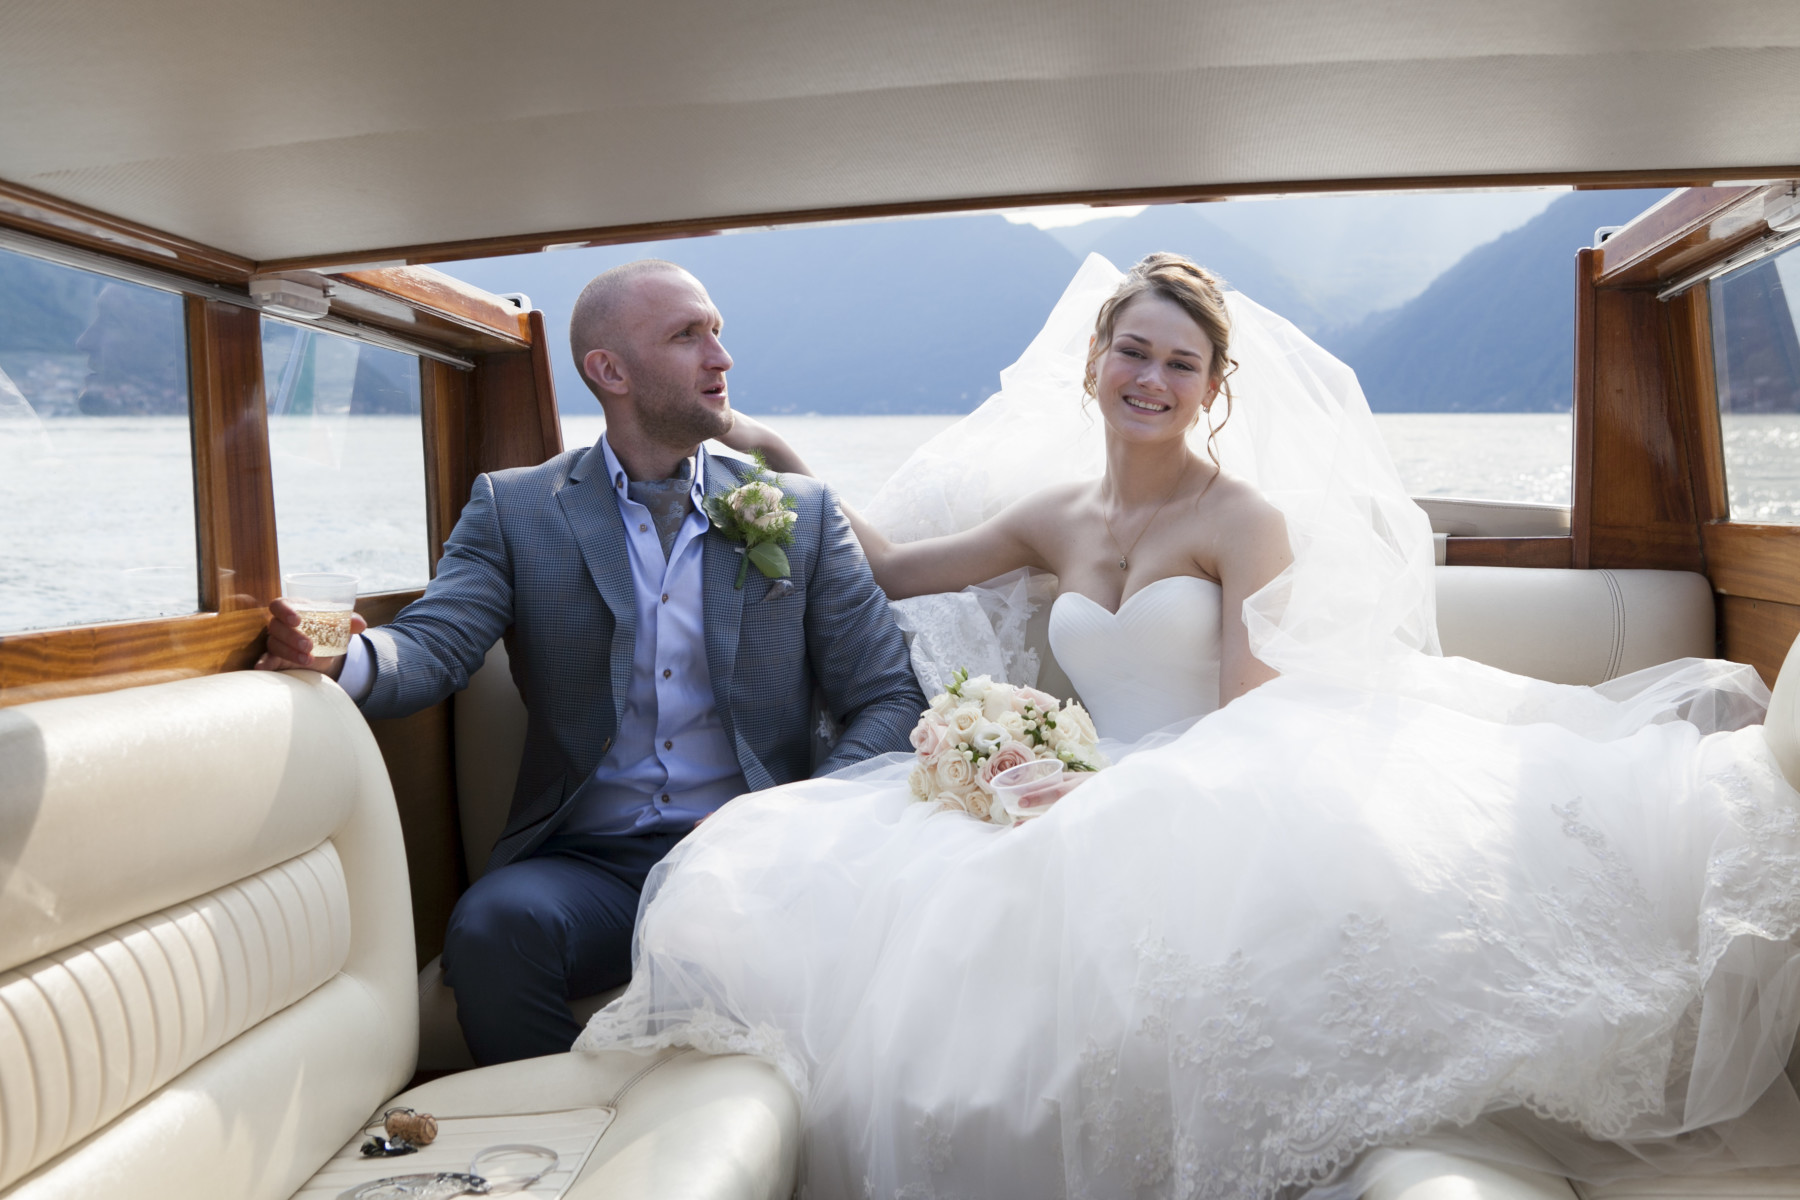 Villa balbianello - Lake Como - Italy - Destination wedding